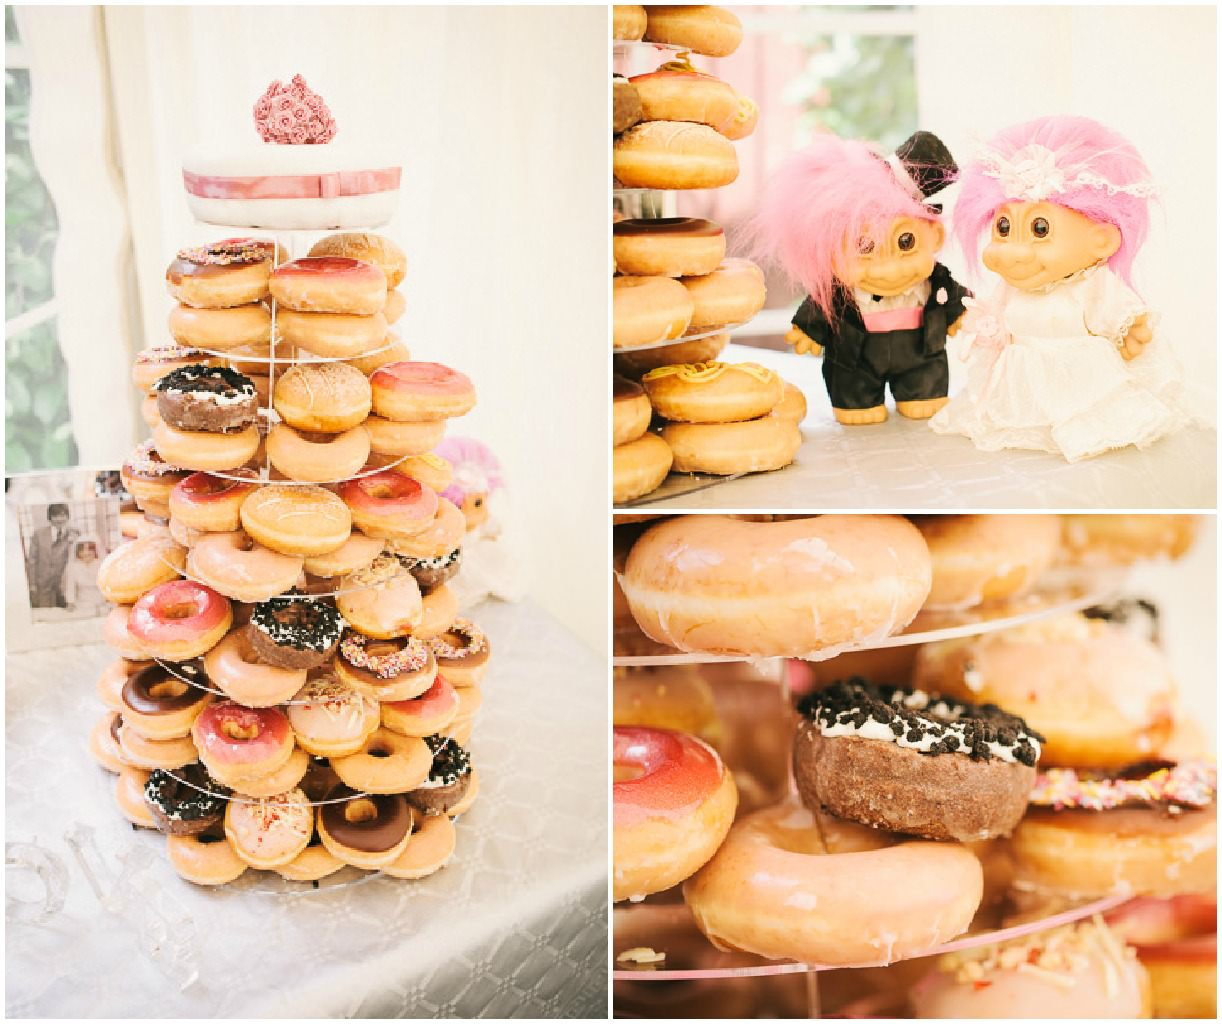 Krispy Kreme tower wedding cake